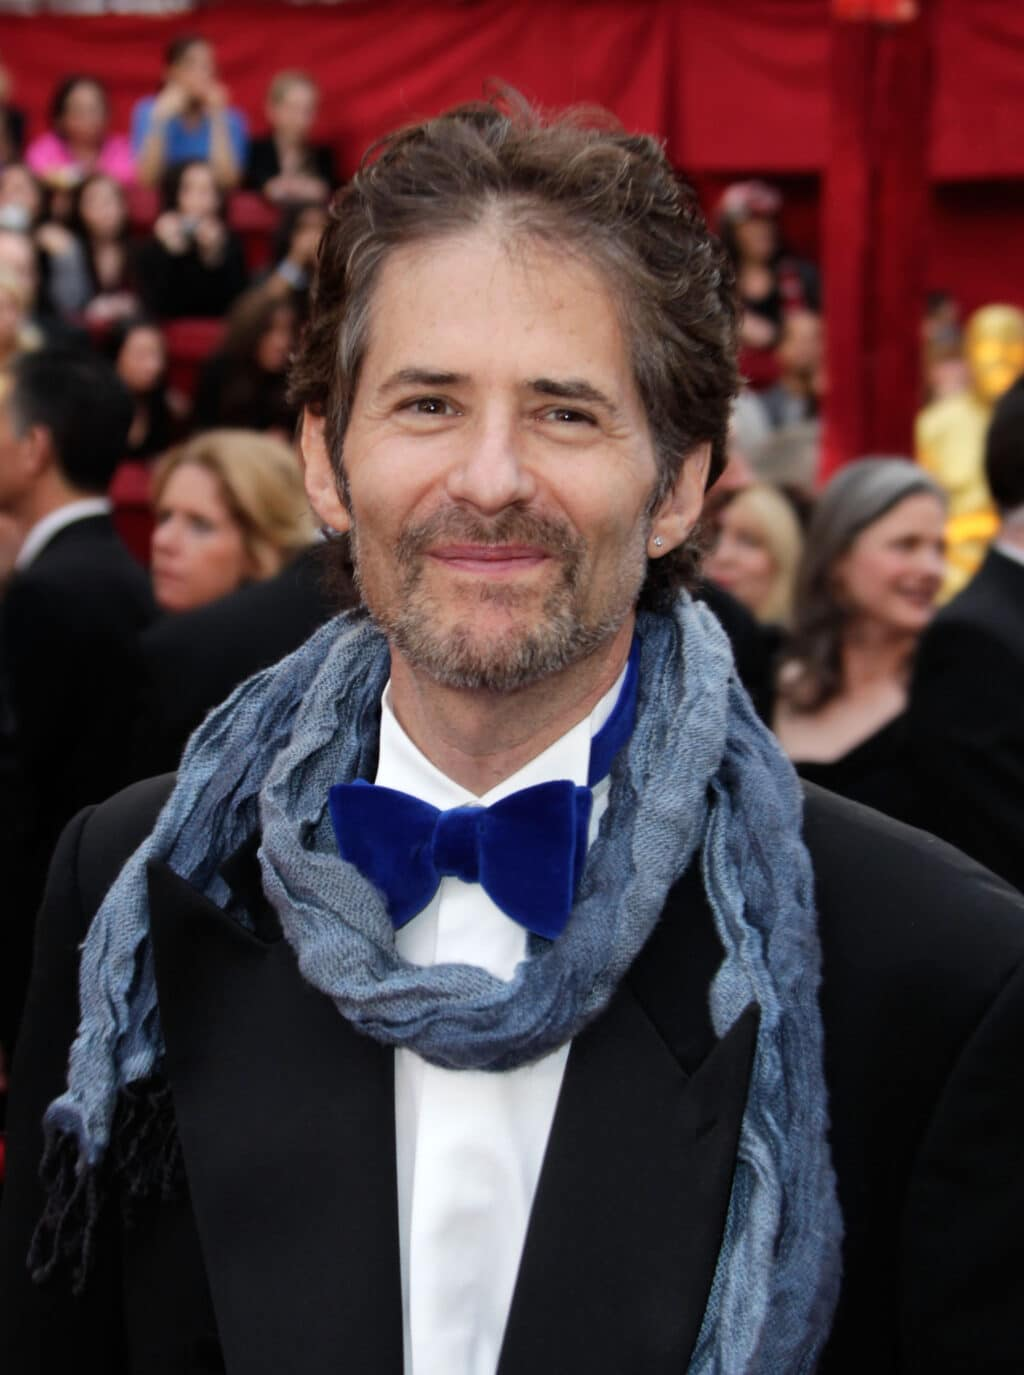 JAMES HORNER COMPOSITORE